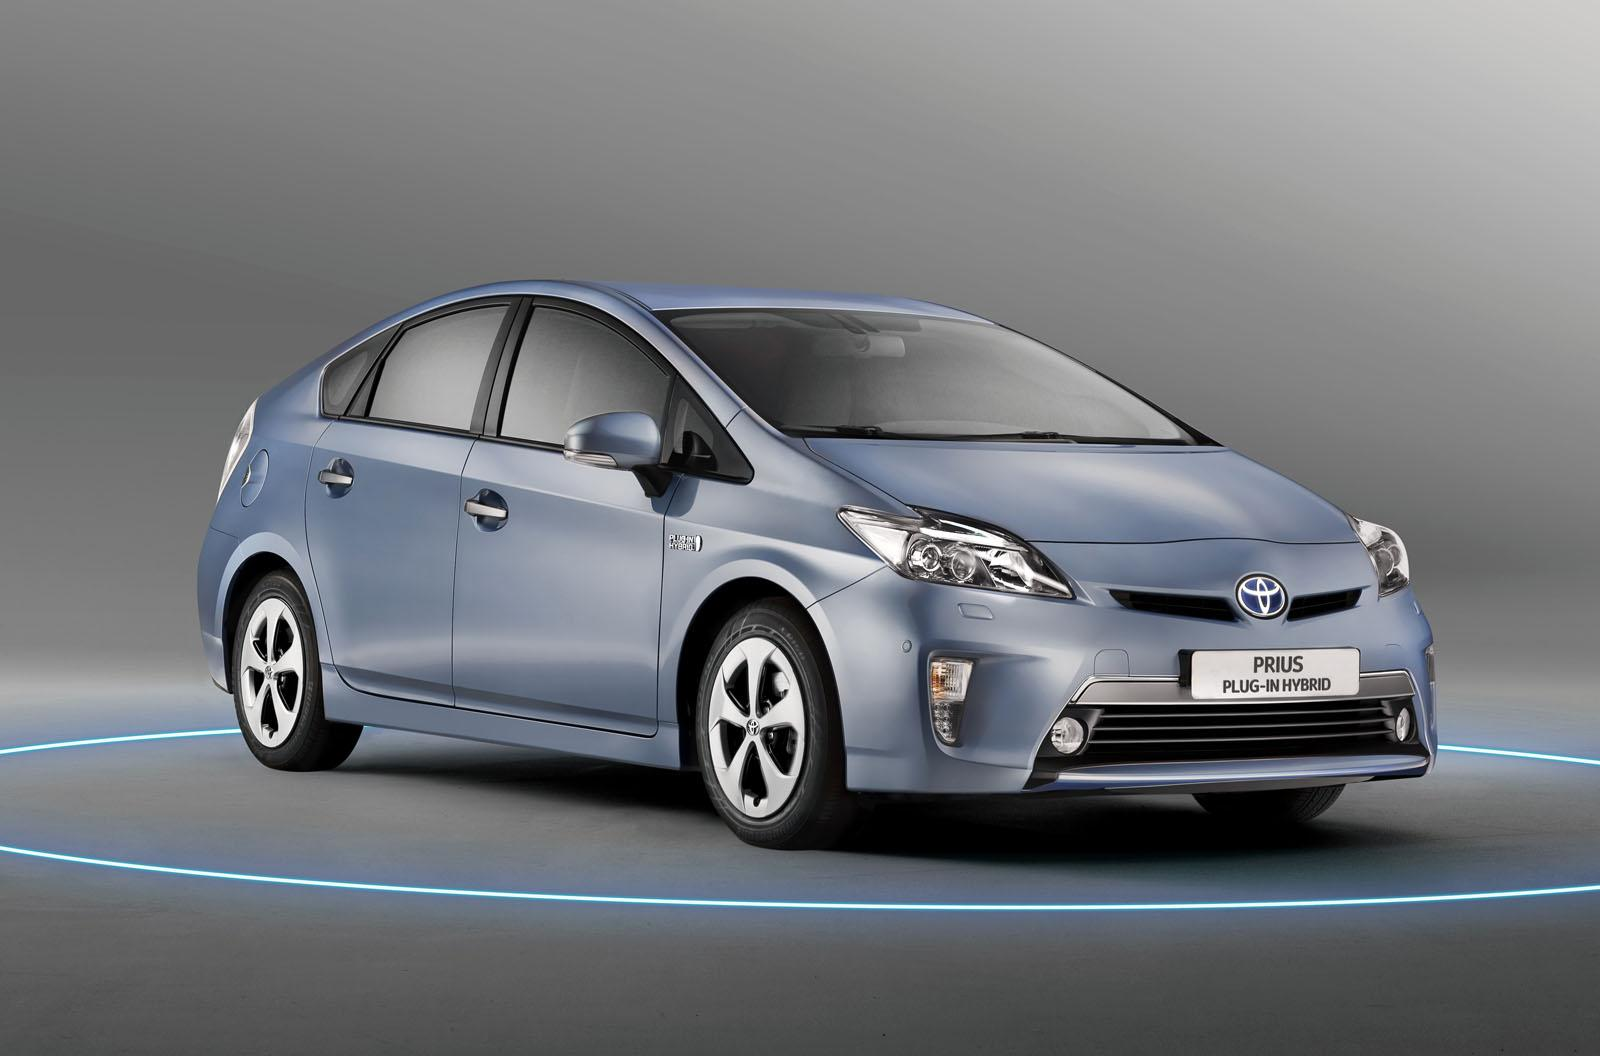 toyota prius plug in hybrid production ends in june 2015 replacement planned for 2016. Black Bedroom Furniture Sets. Home Design Ideas